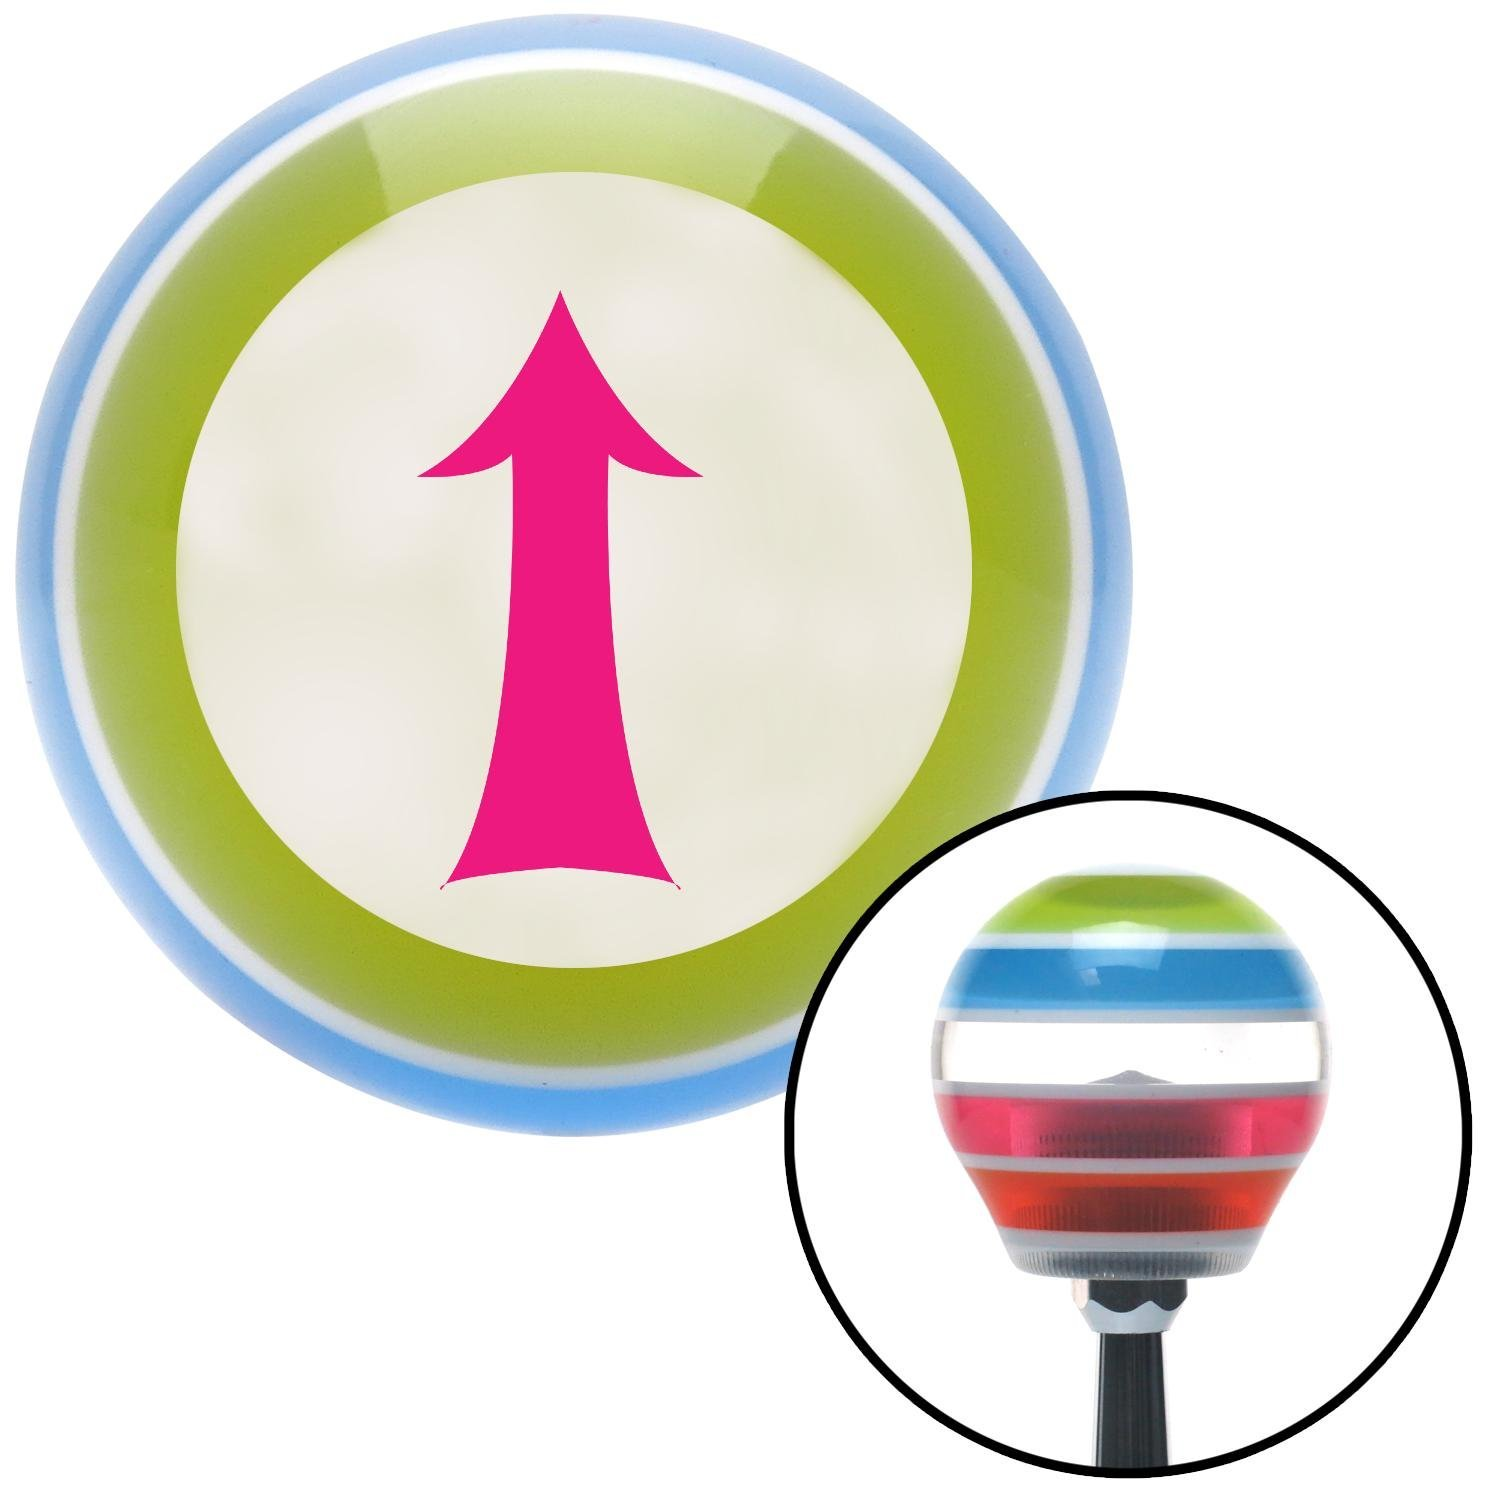 American Shifter 130956 Stripe Shift Knob with M16 x 1.5 Insert Pink Fancy Solid Directional Arrow Up